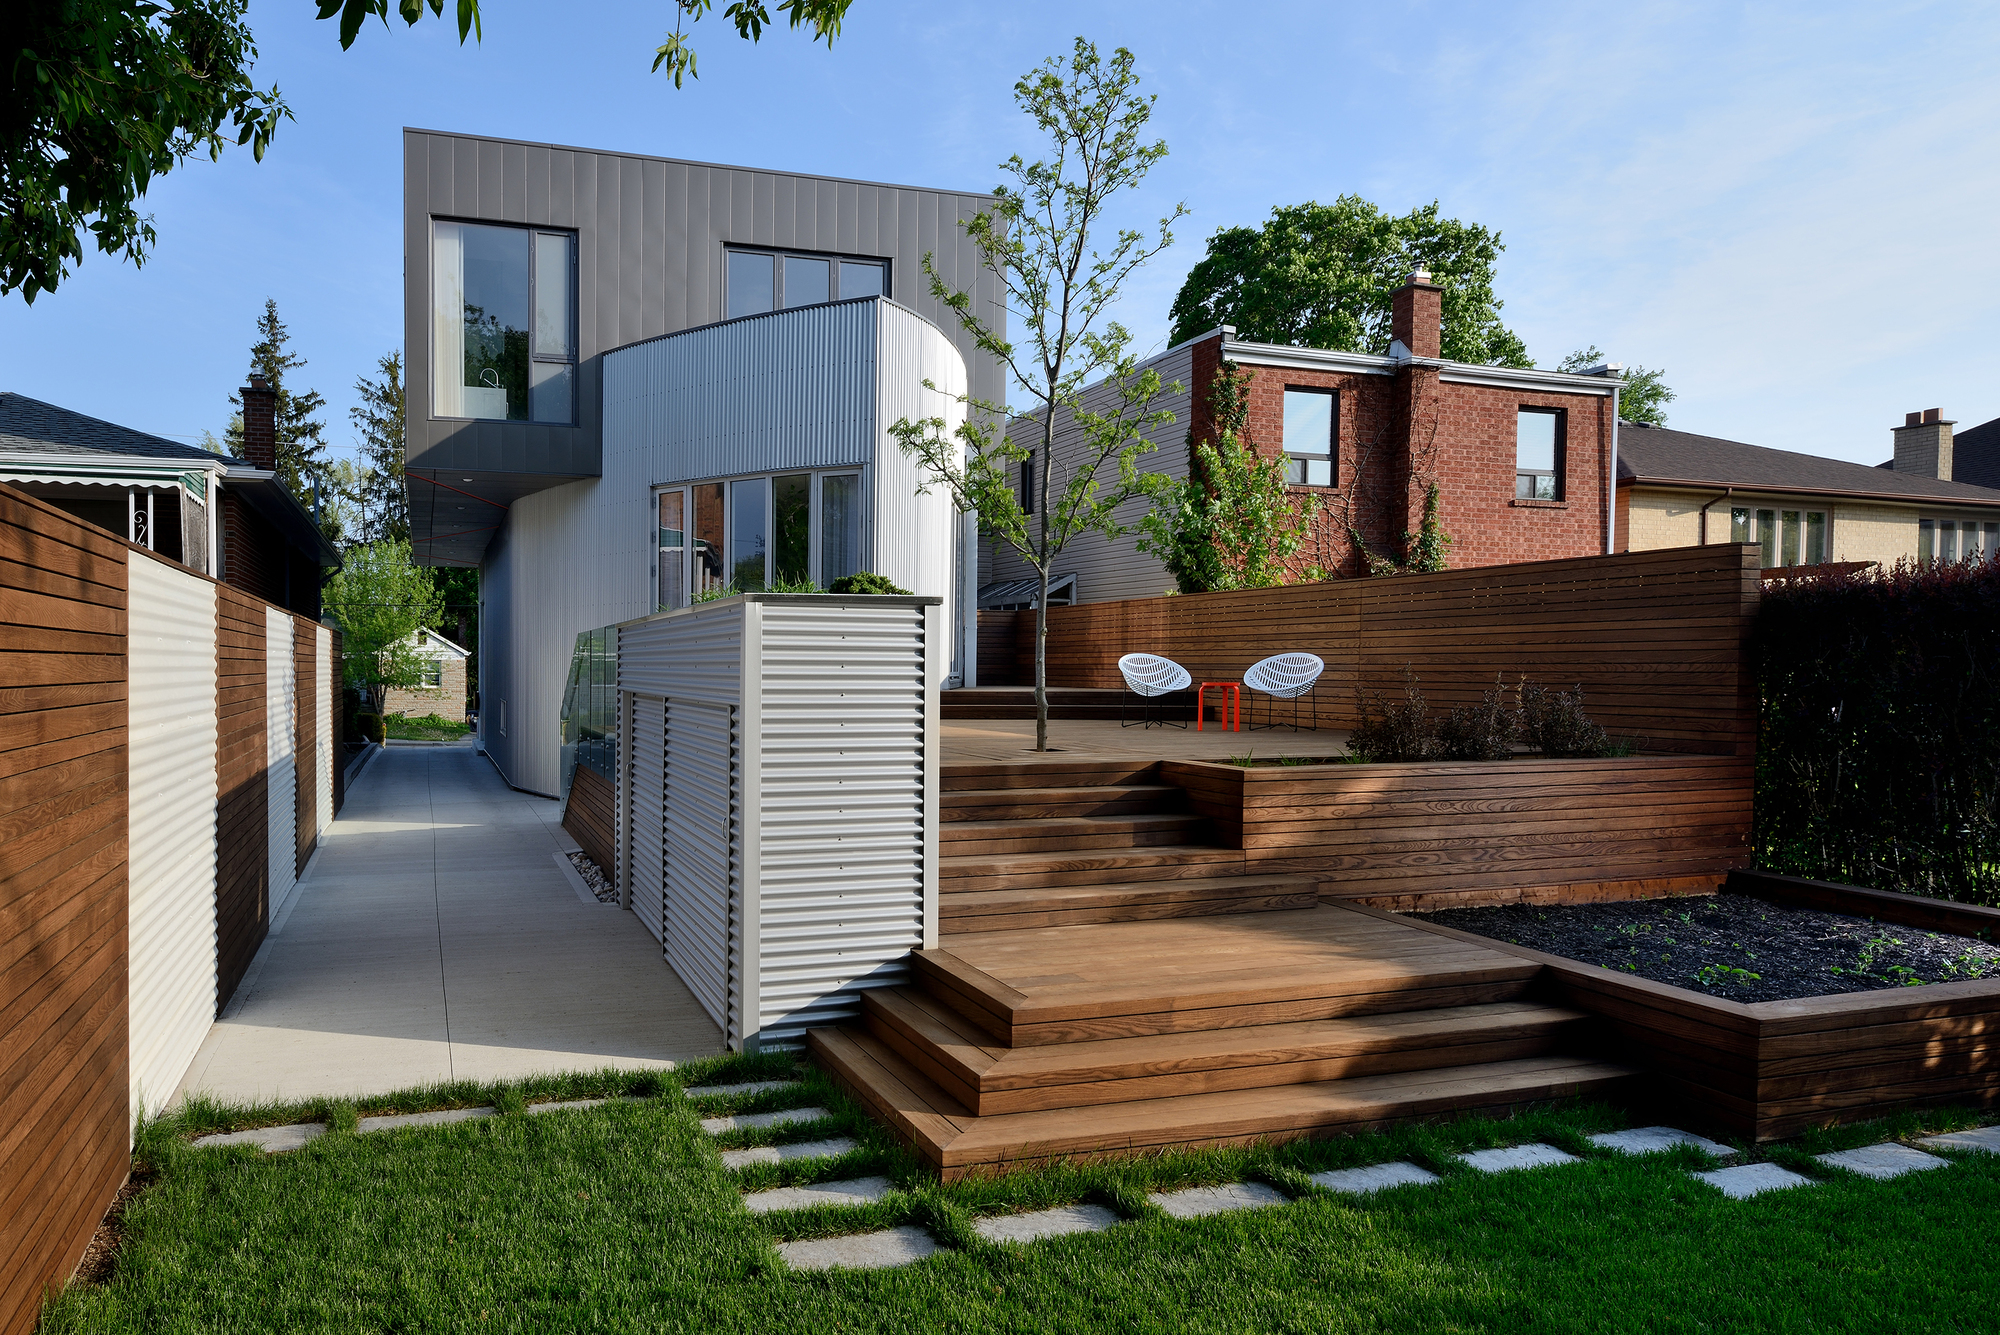 Gallery of the moos home tampold architects 3 At home architecture gordes 84